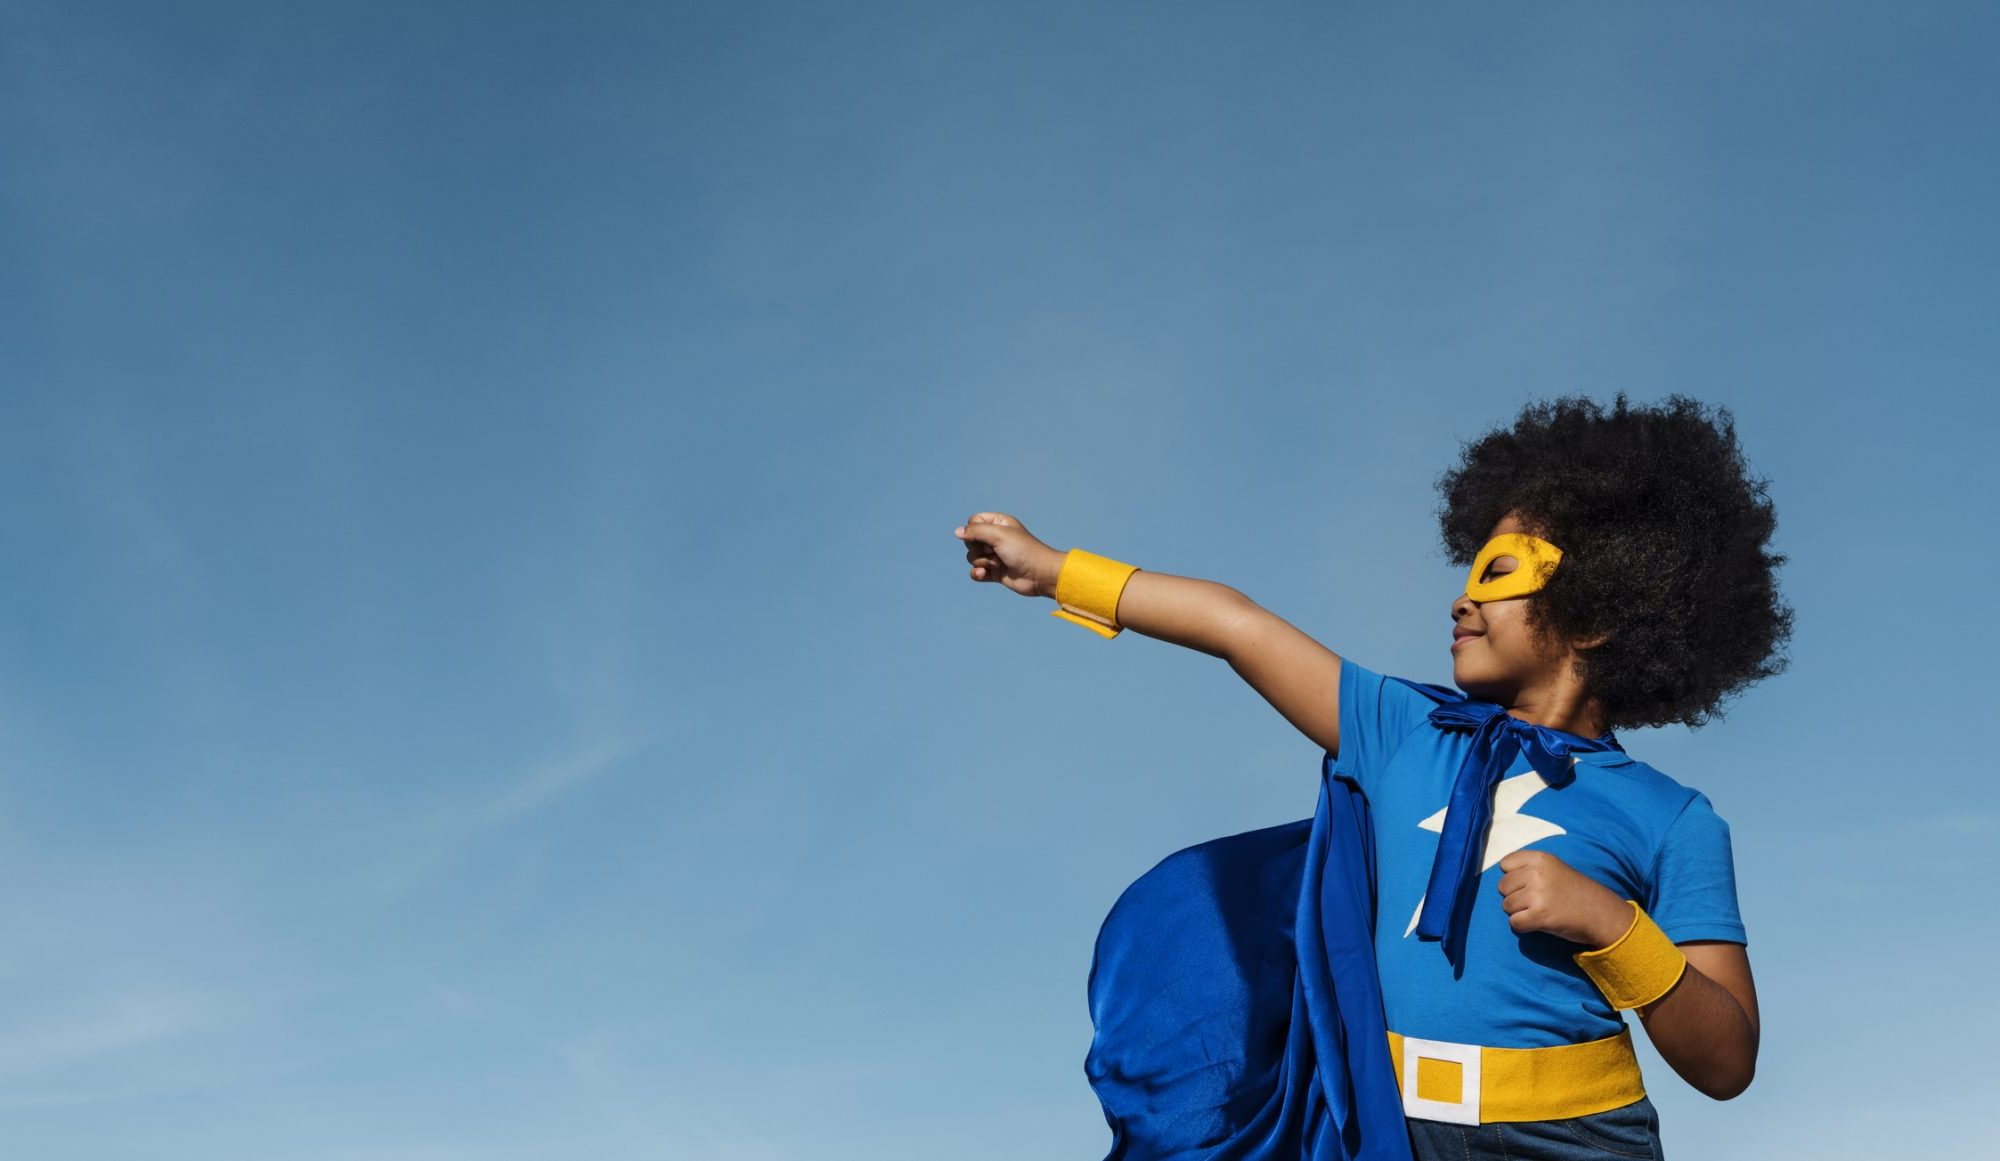 A kid with short black afro hair punching into the sky. The young kid is in a blue and gold superhero outfit with a mask, cap and a lightning bolt icon on his t-shirt. This is to symbolise transformation and impact.